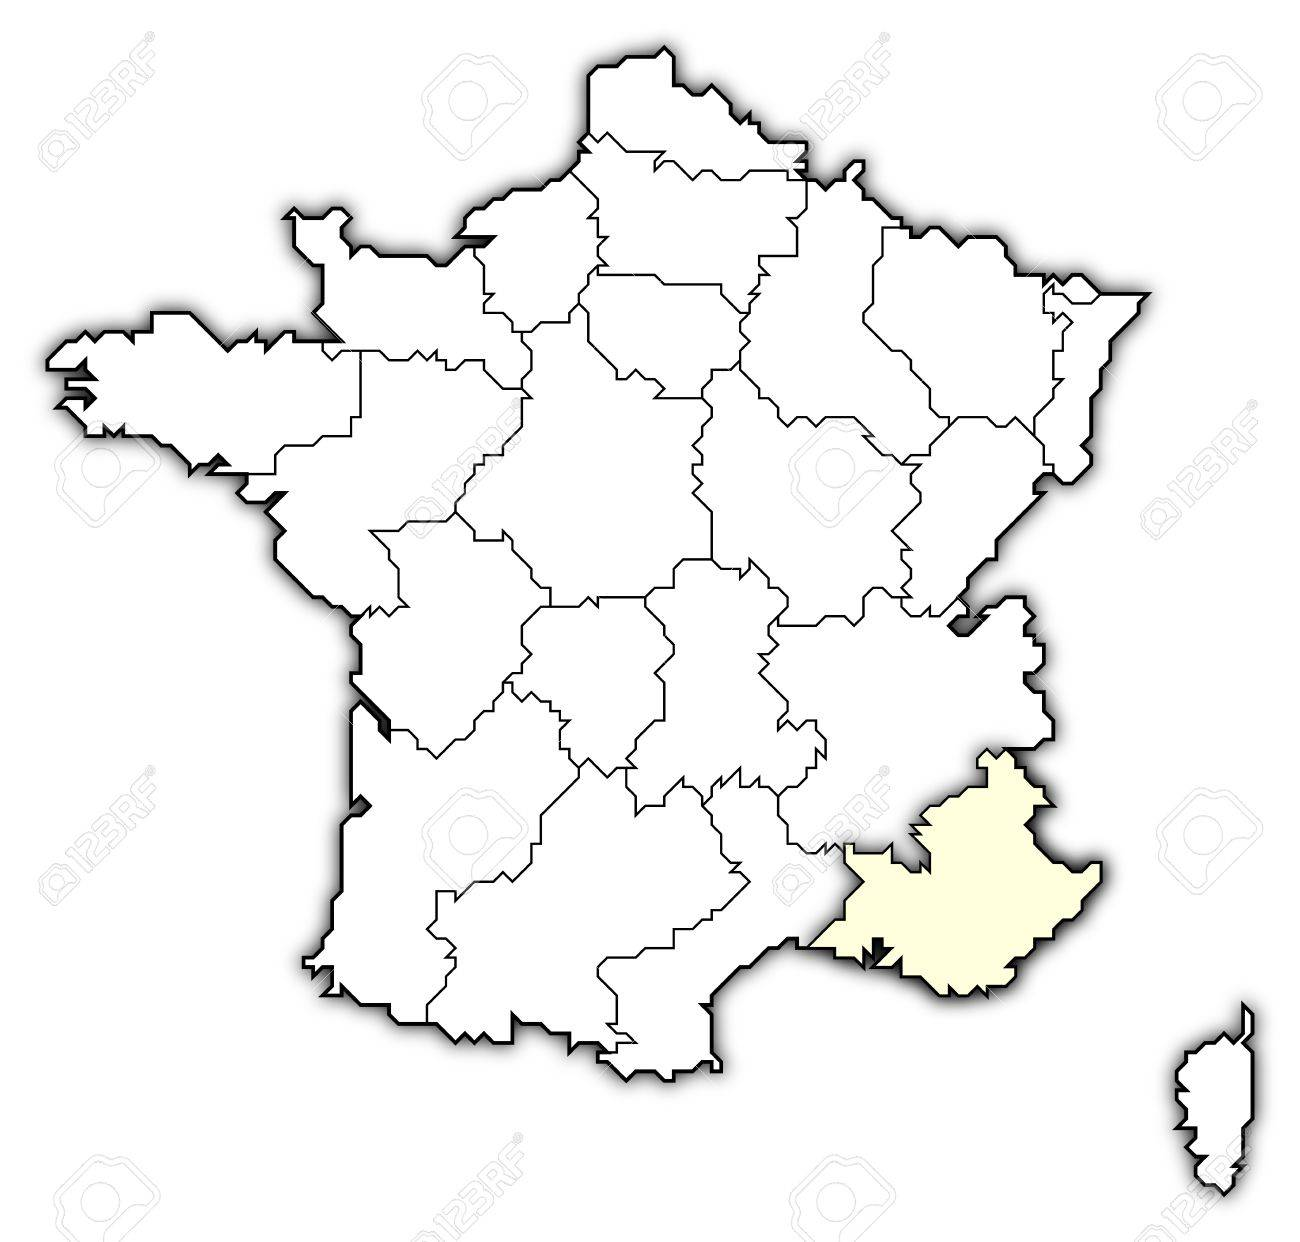 Provence Map Of France.Political Map Of France With The Several Regions Where Provence